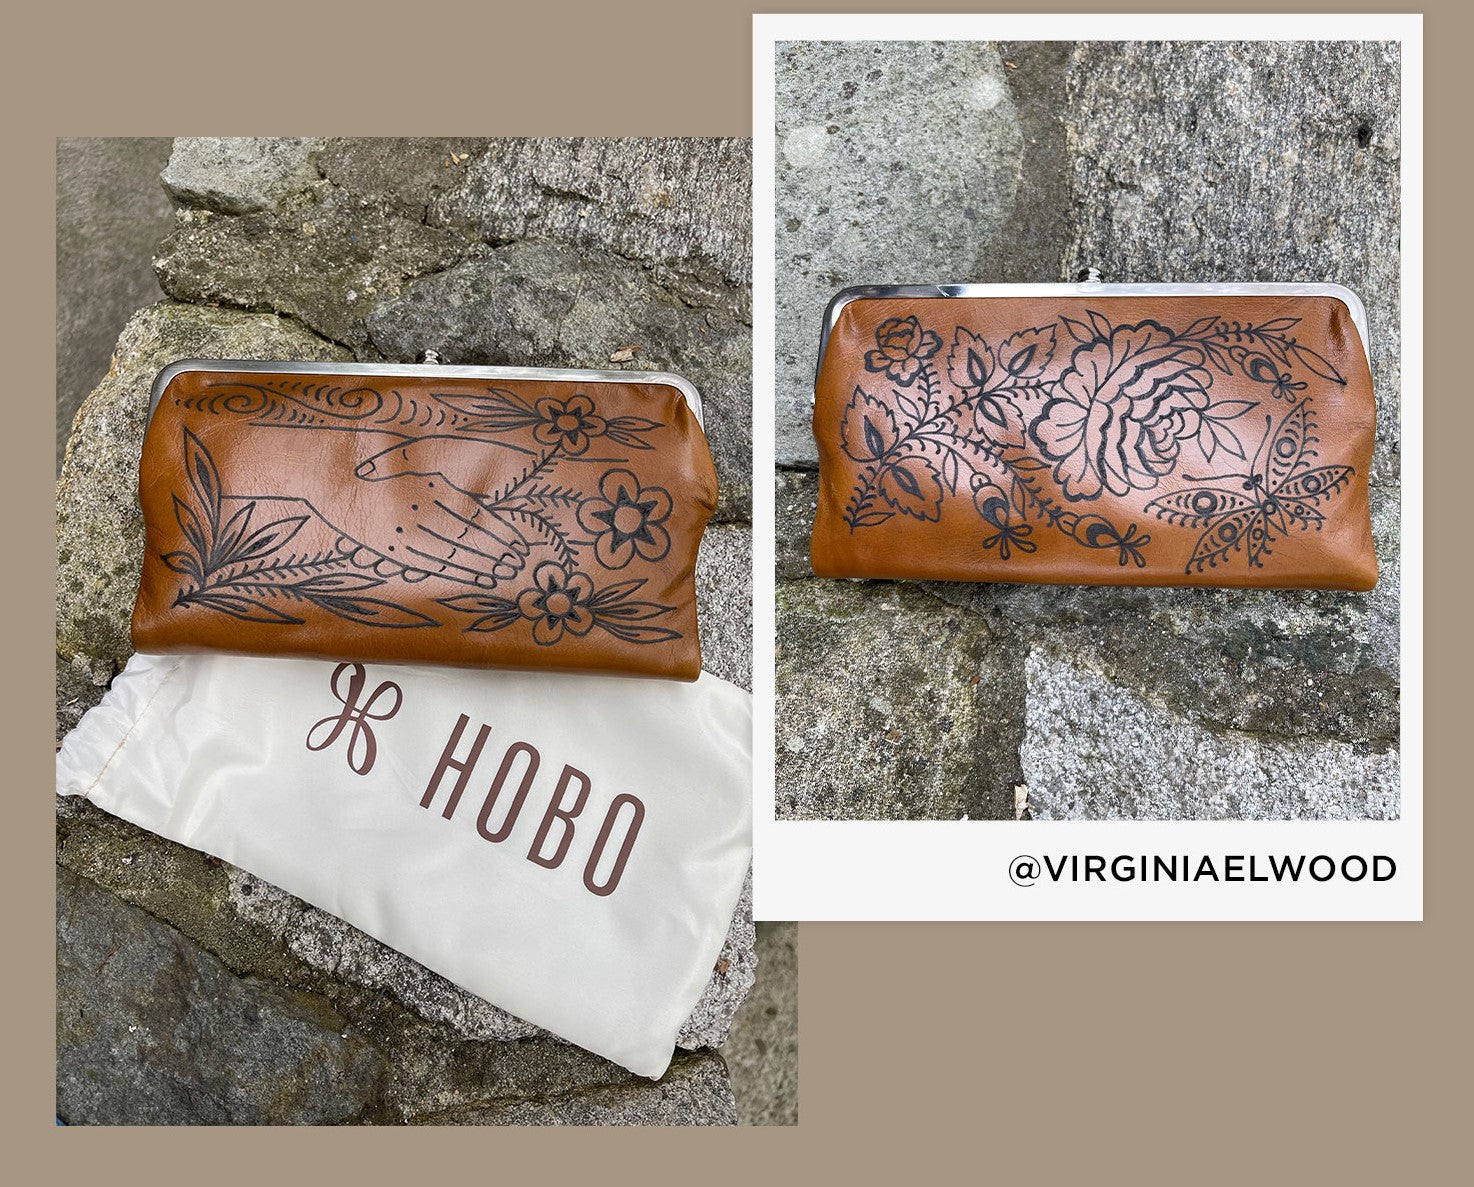 Shop limited edition Lauren wallets, hand Inked by Virginia Elwood